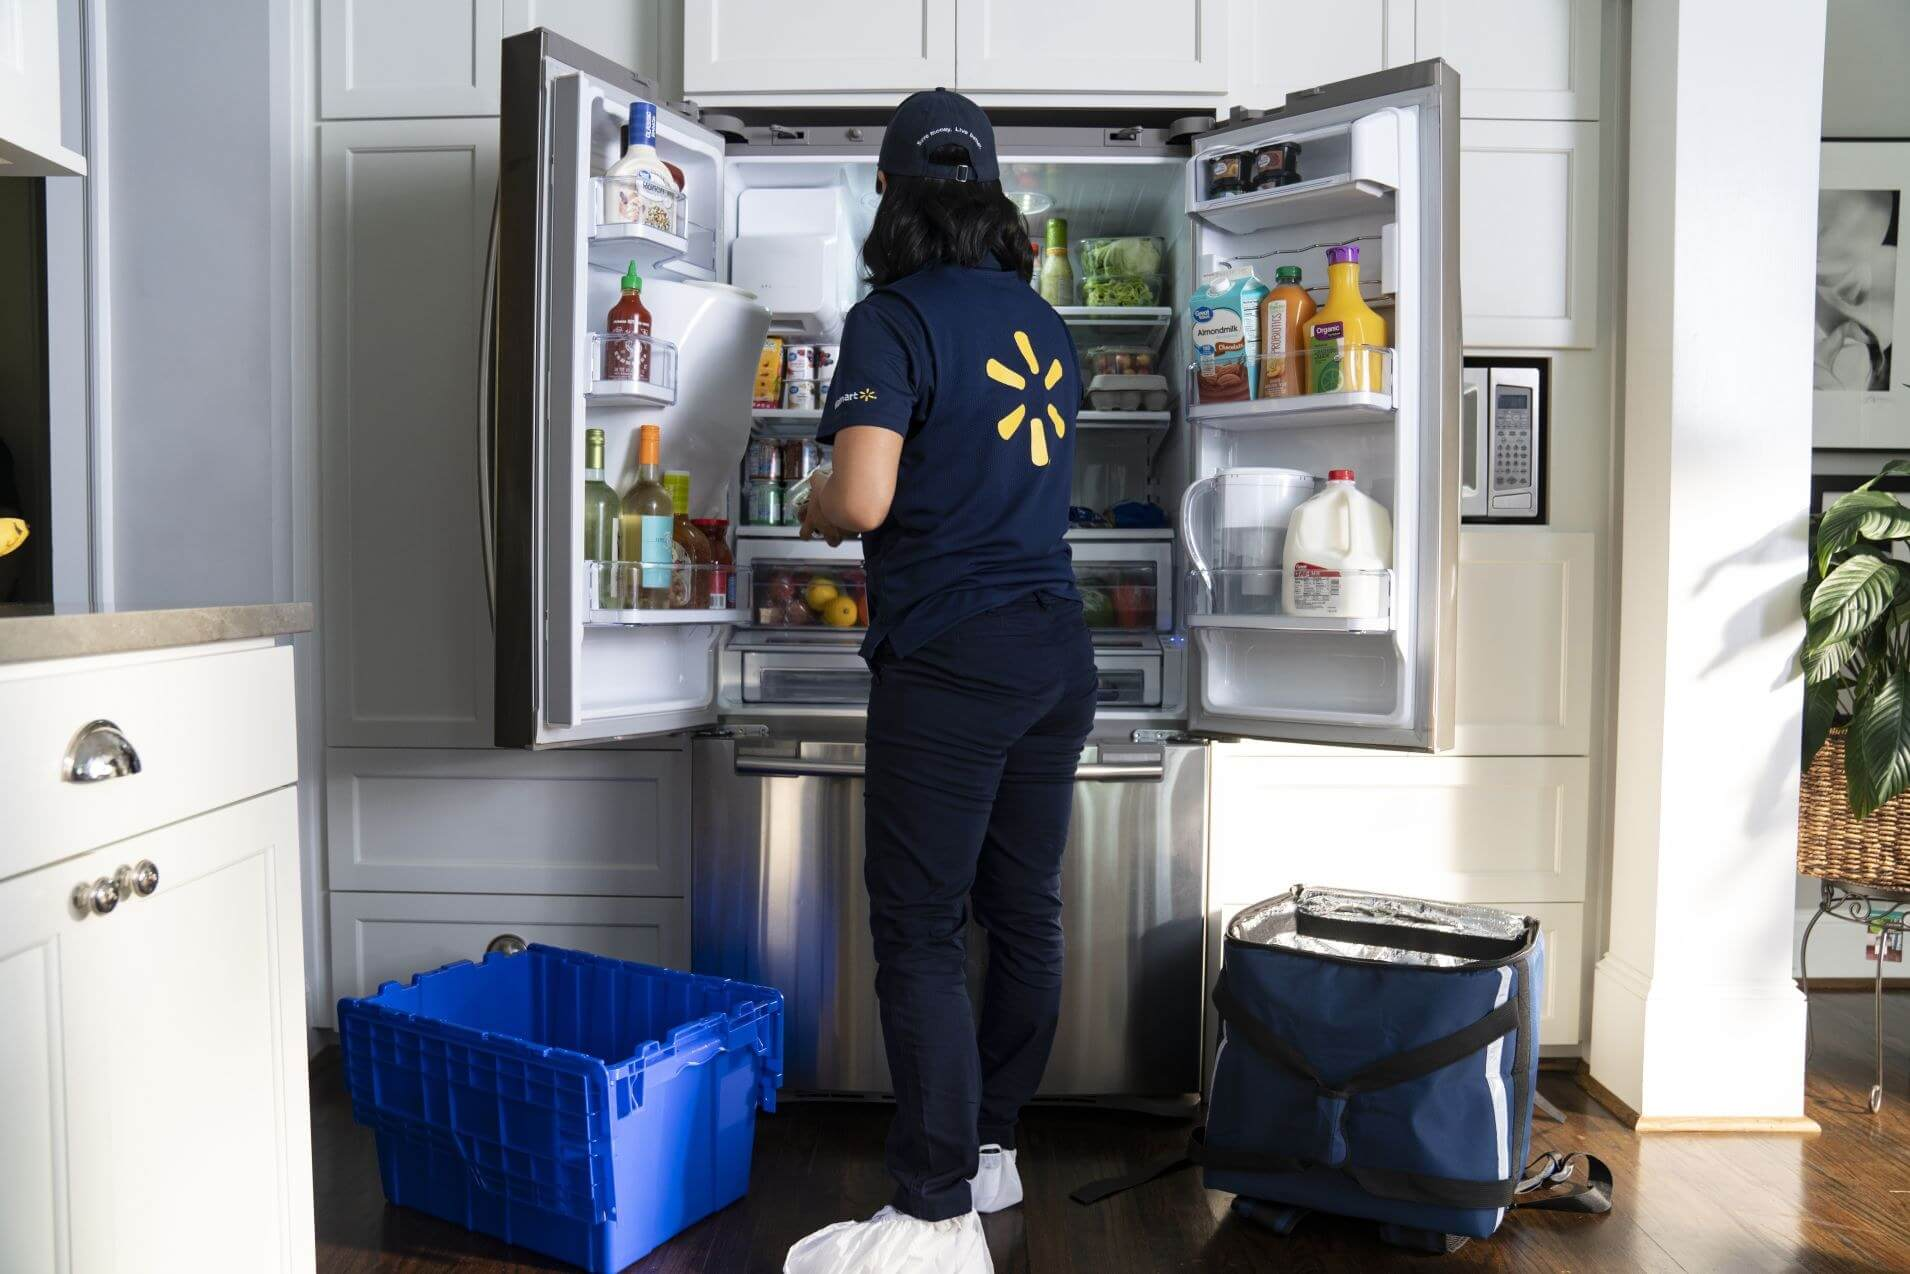 Walmart will deliver groceries to your refrigerator